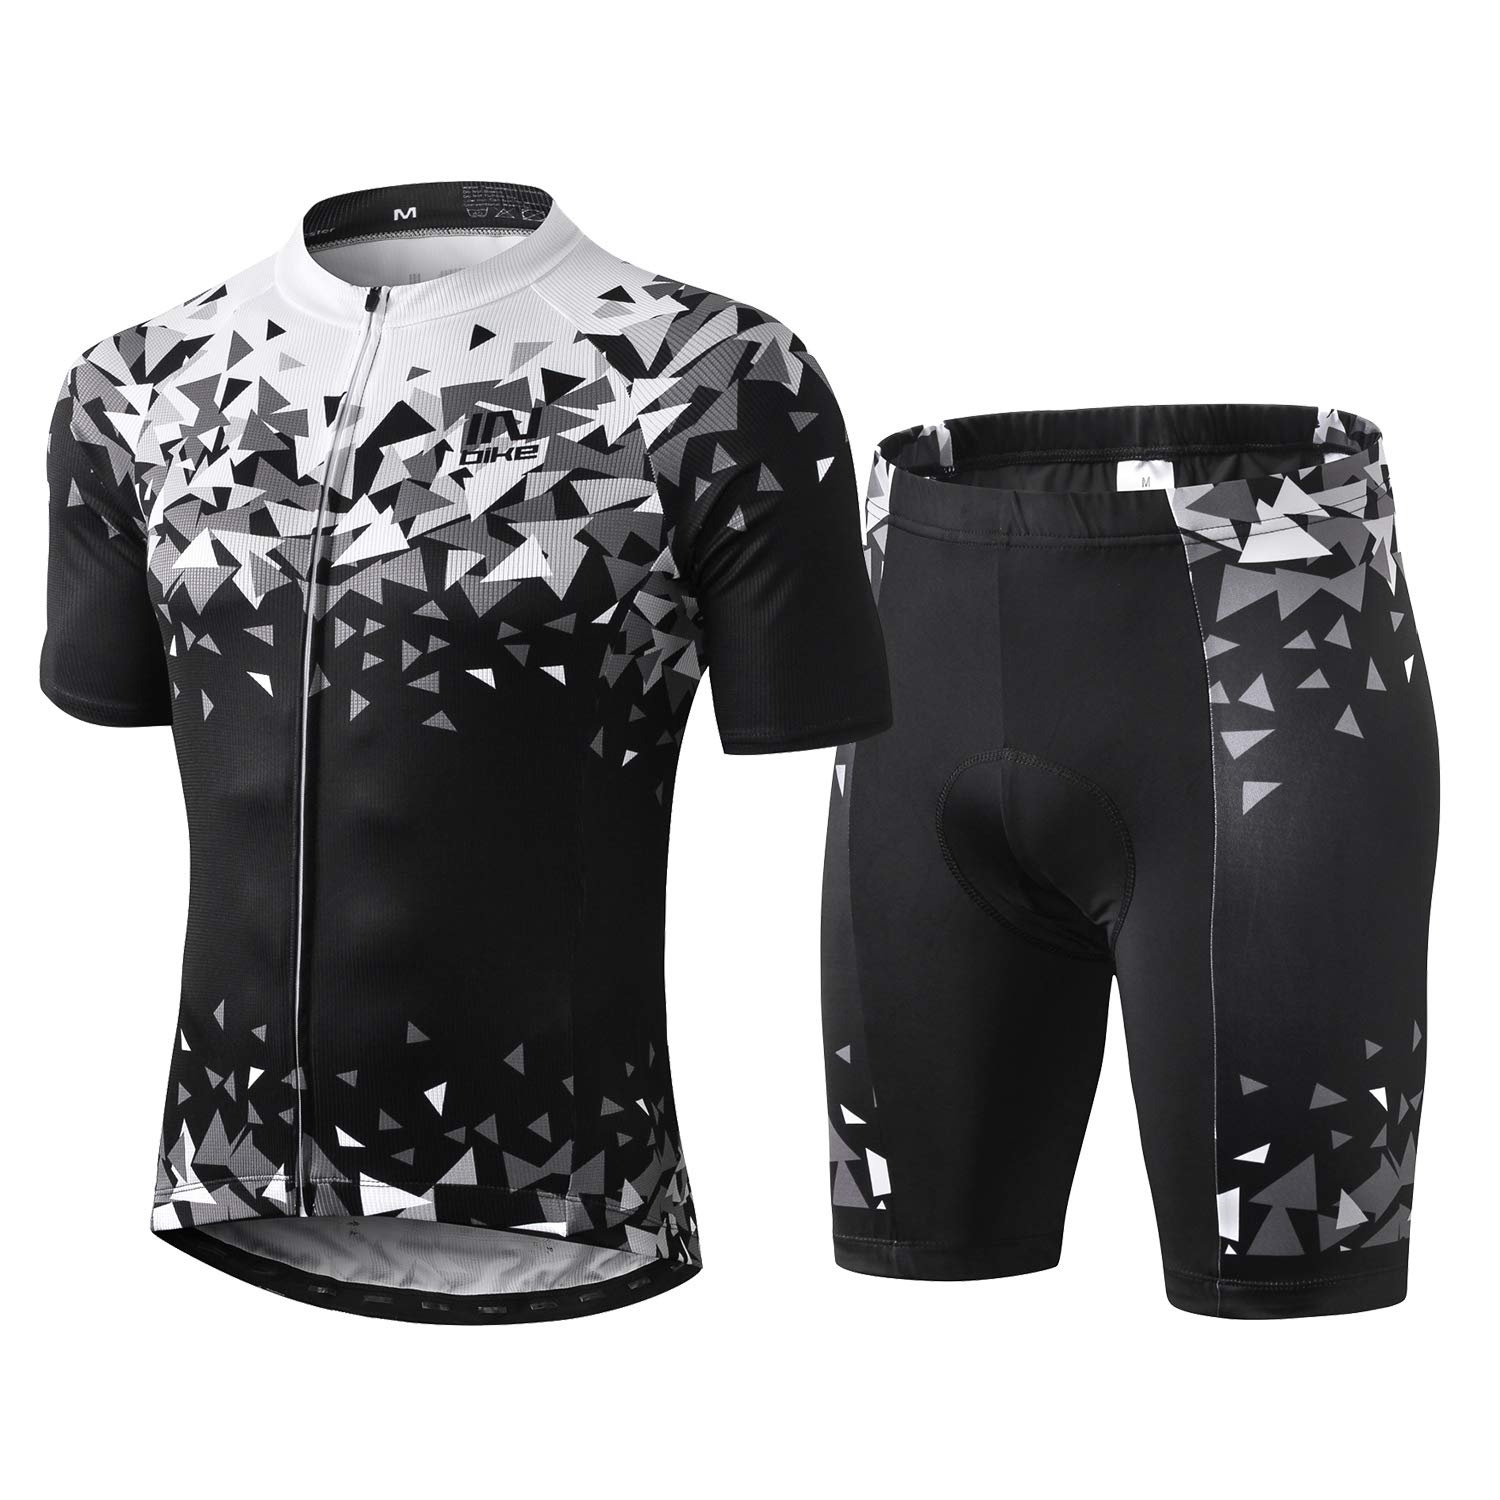 INBIKE Men Cycling Jersey Set Short Sleeve Breathable Bike Shirt with Padded Shorts G05 2XL (Large) by INBIKE